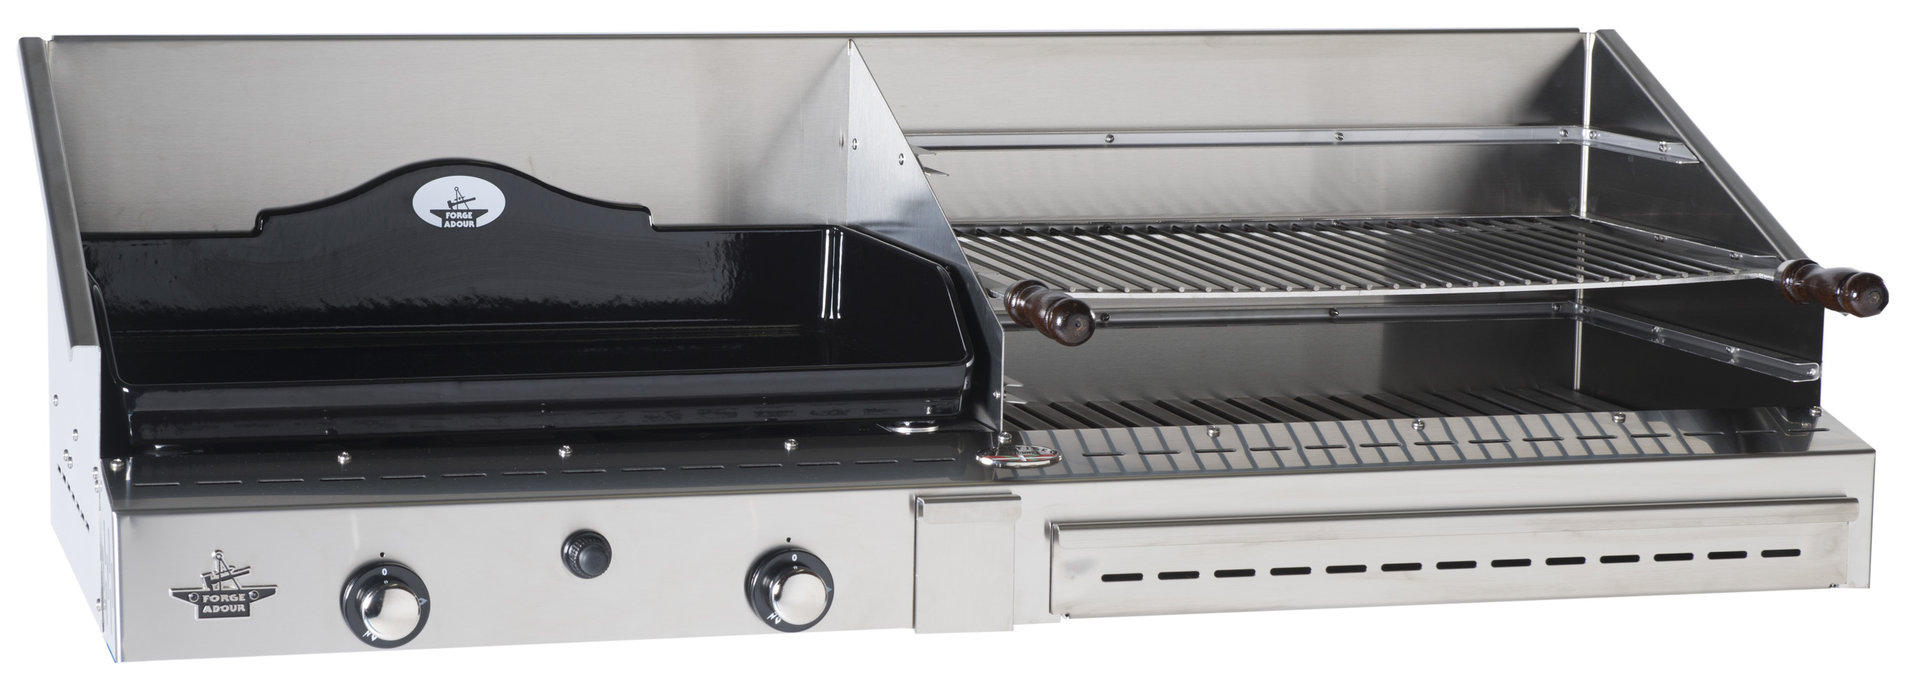 duo 600 inox gas plancha and barbecue the barbecue. Black Bedroom Furniture Sets. Home Design Ideas